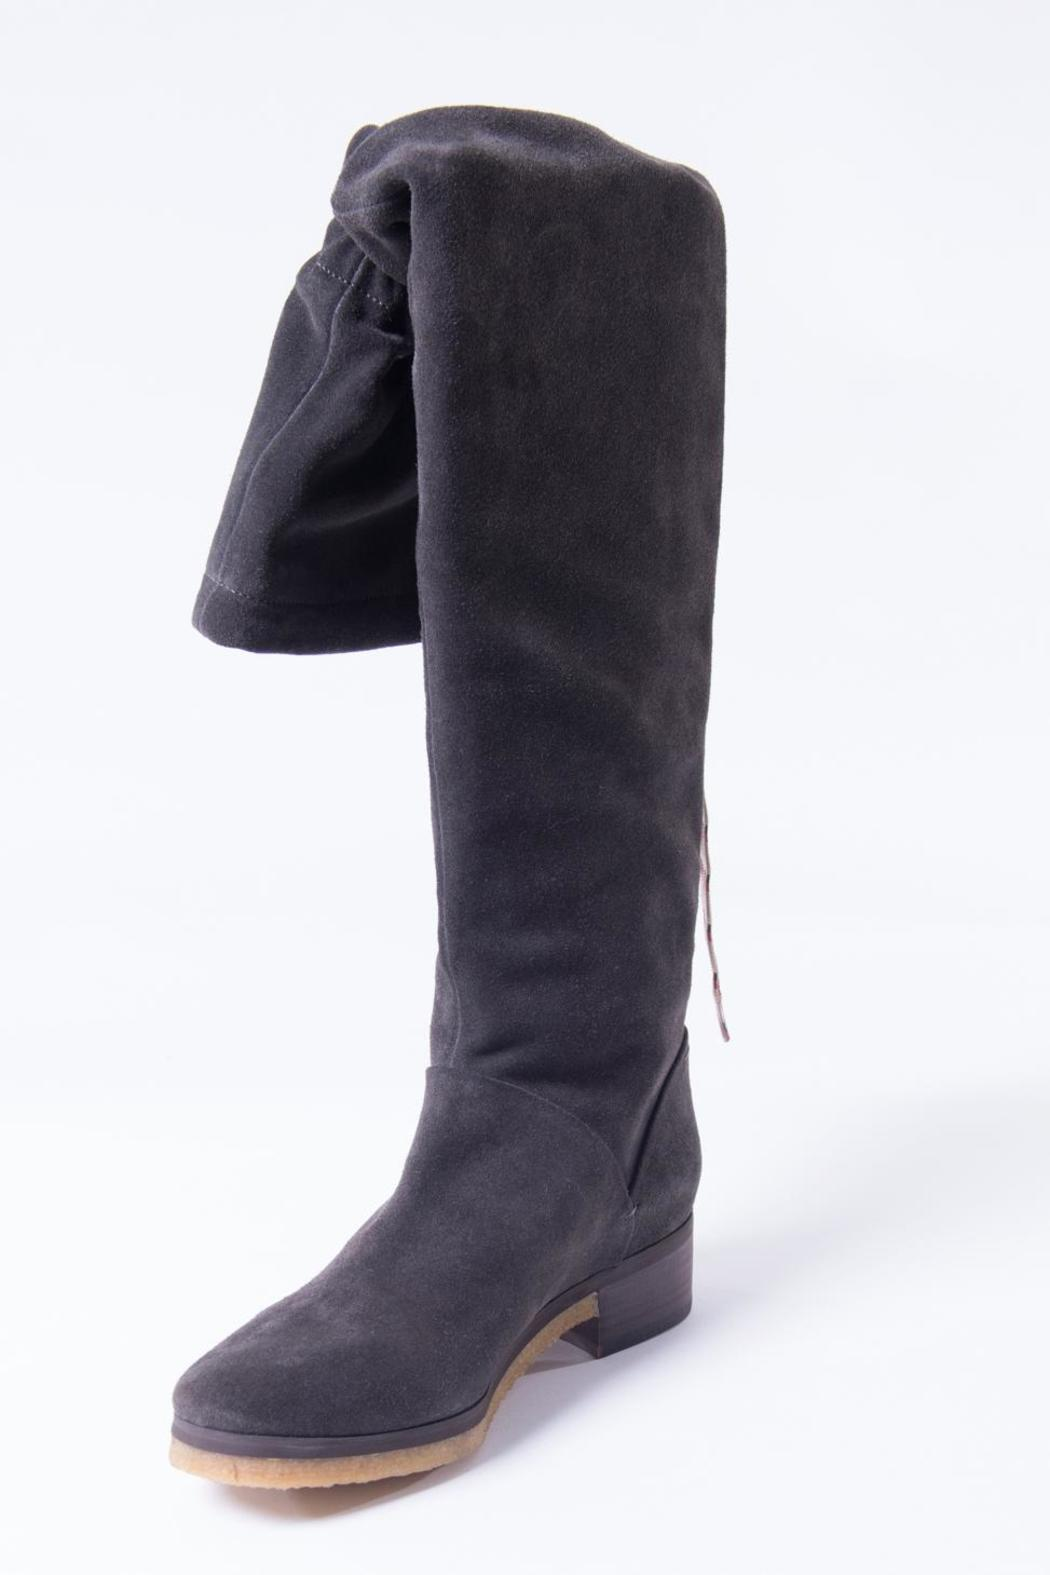 35588748f05 See By Chloe Jona Over-The-Knee Boots from Vail by Perch — Shoptiques